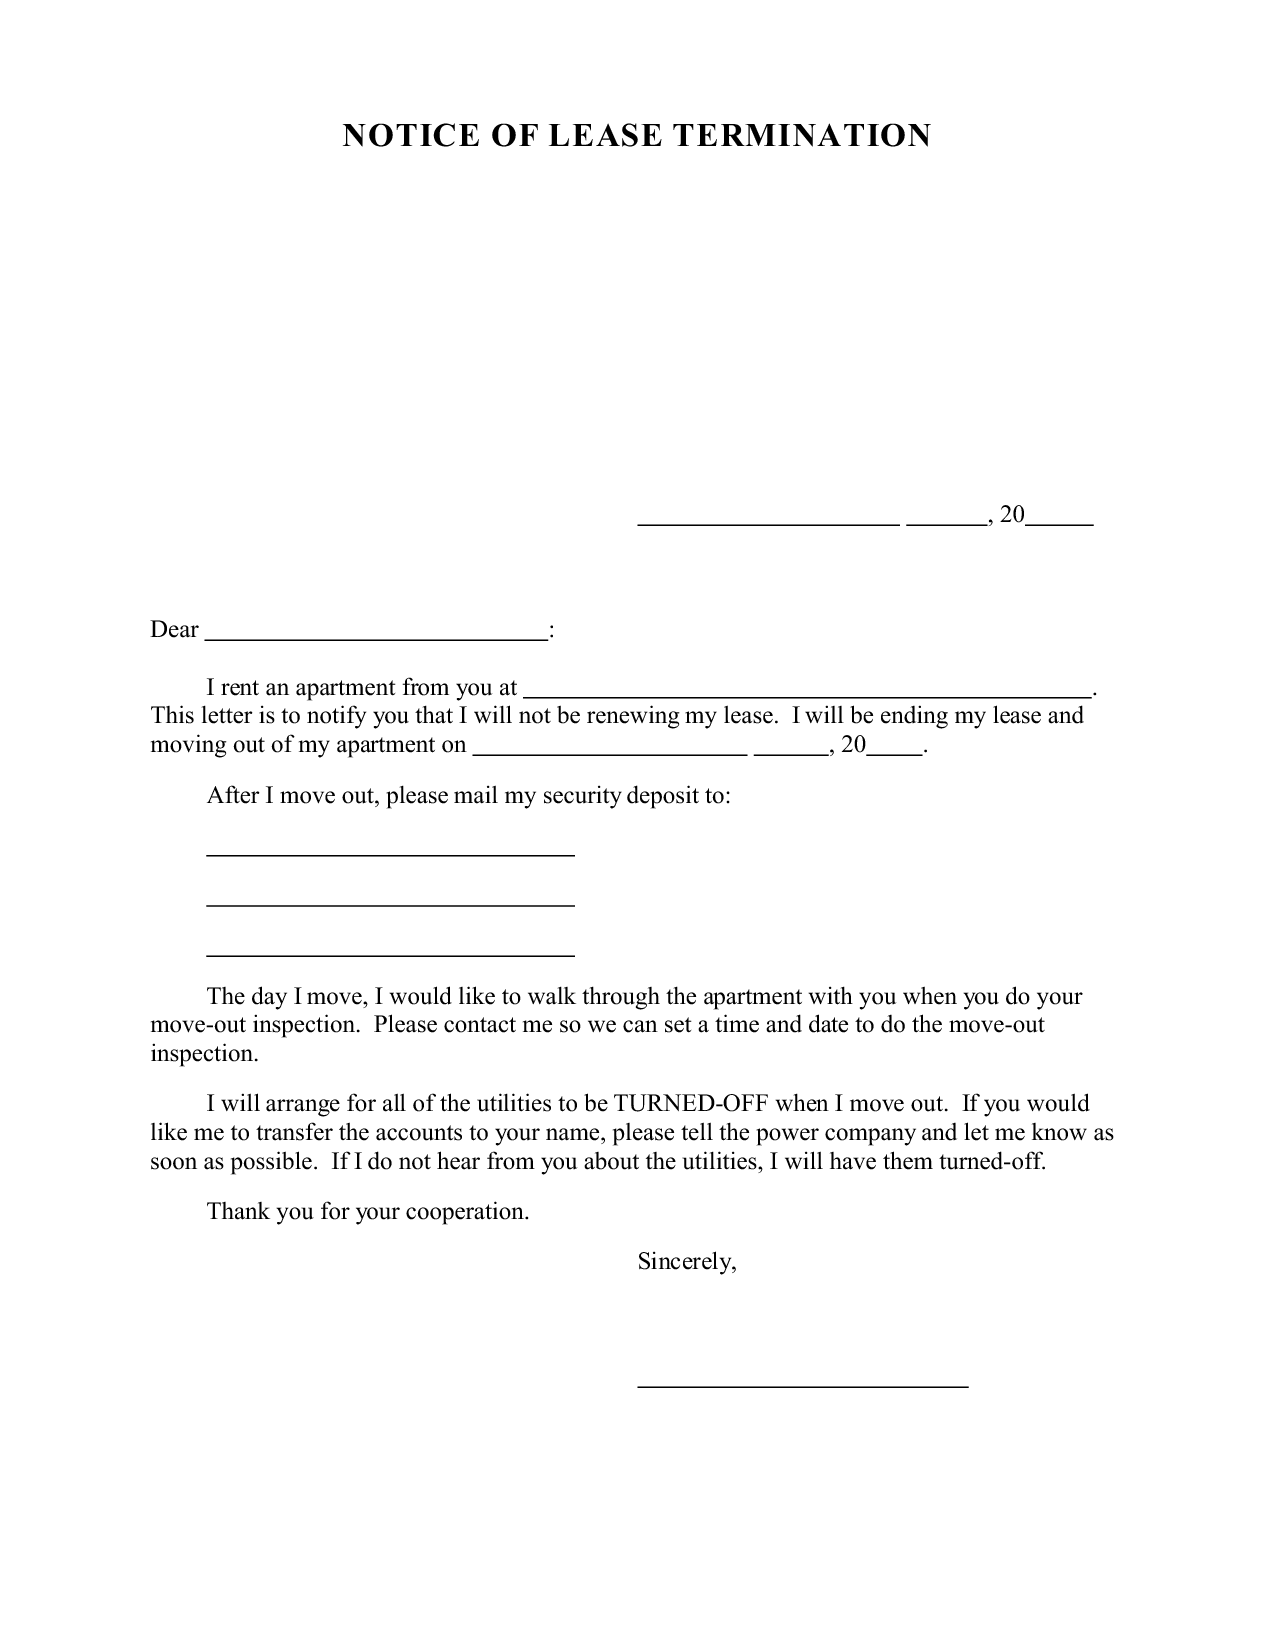 letter of not renewing lease - Free Printable Documents  Letter